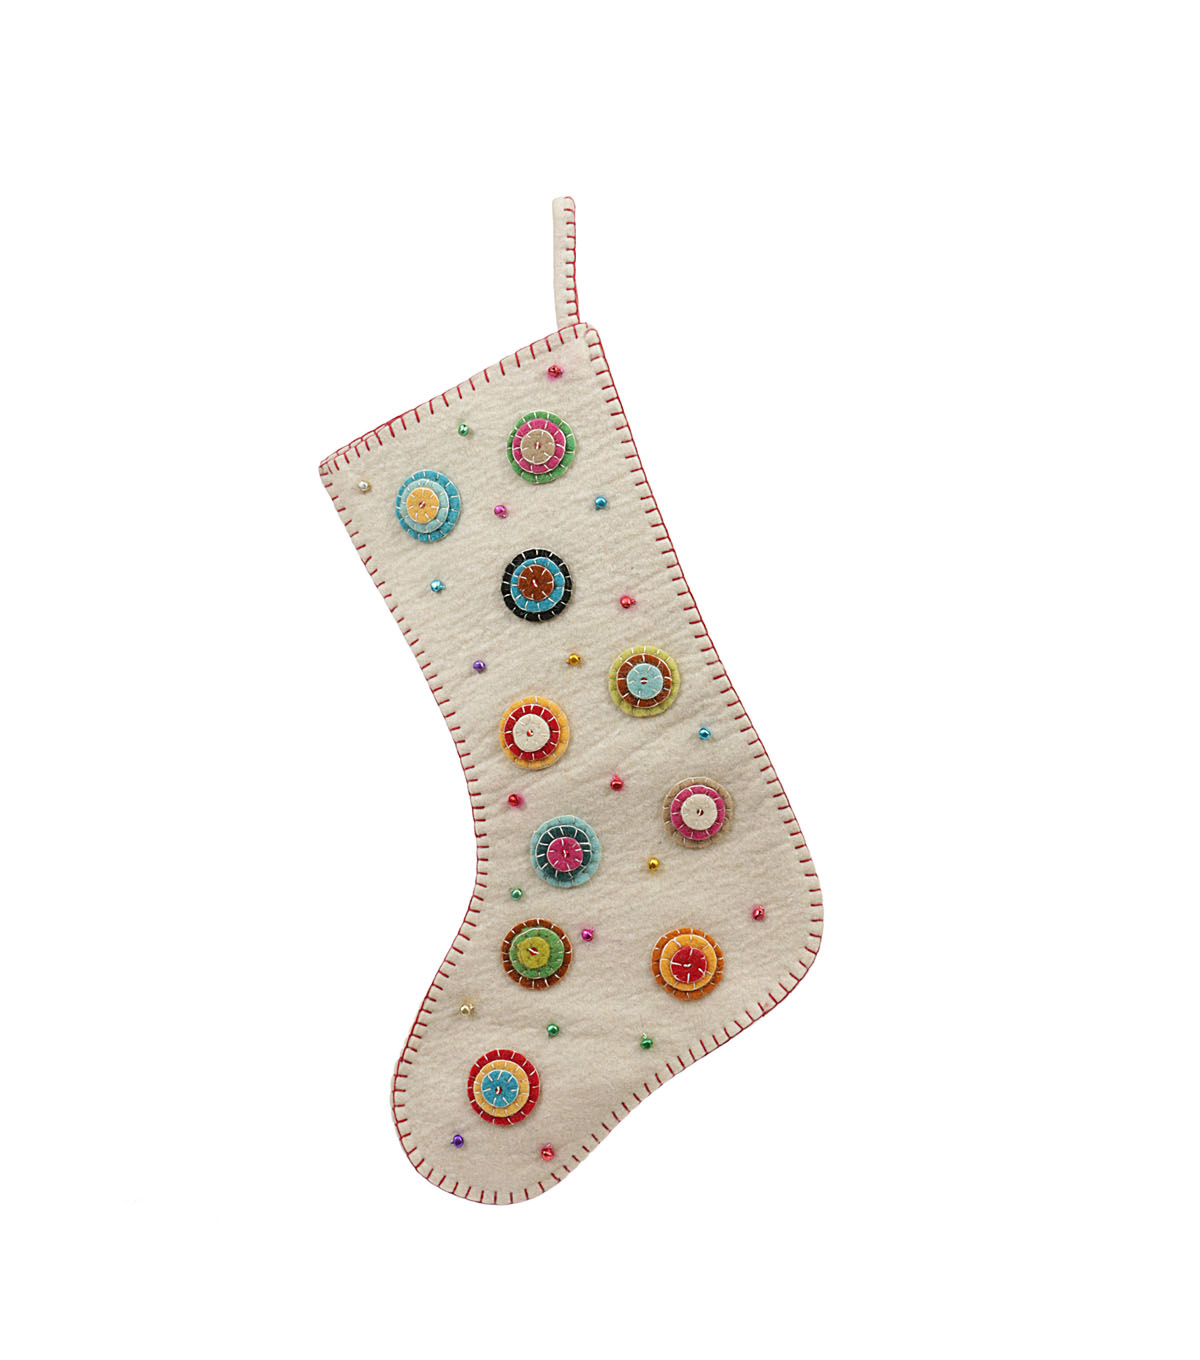 3R Studios Christmas Wool Stocking with Appliqued Felt Buttons & Beads